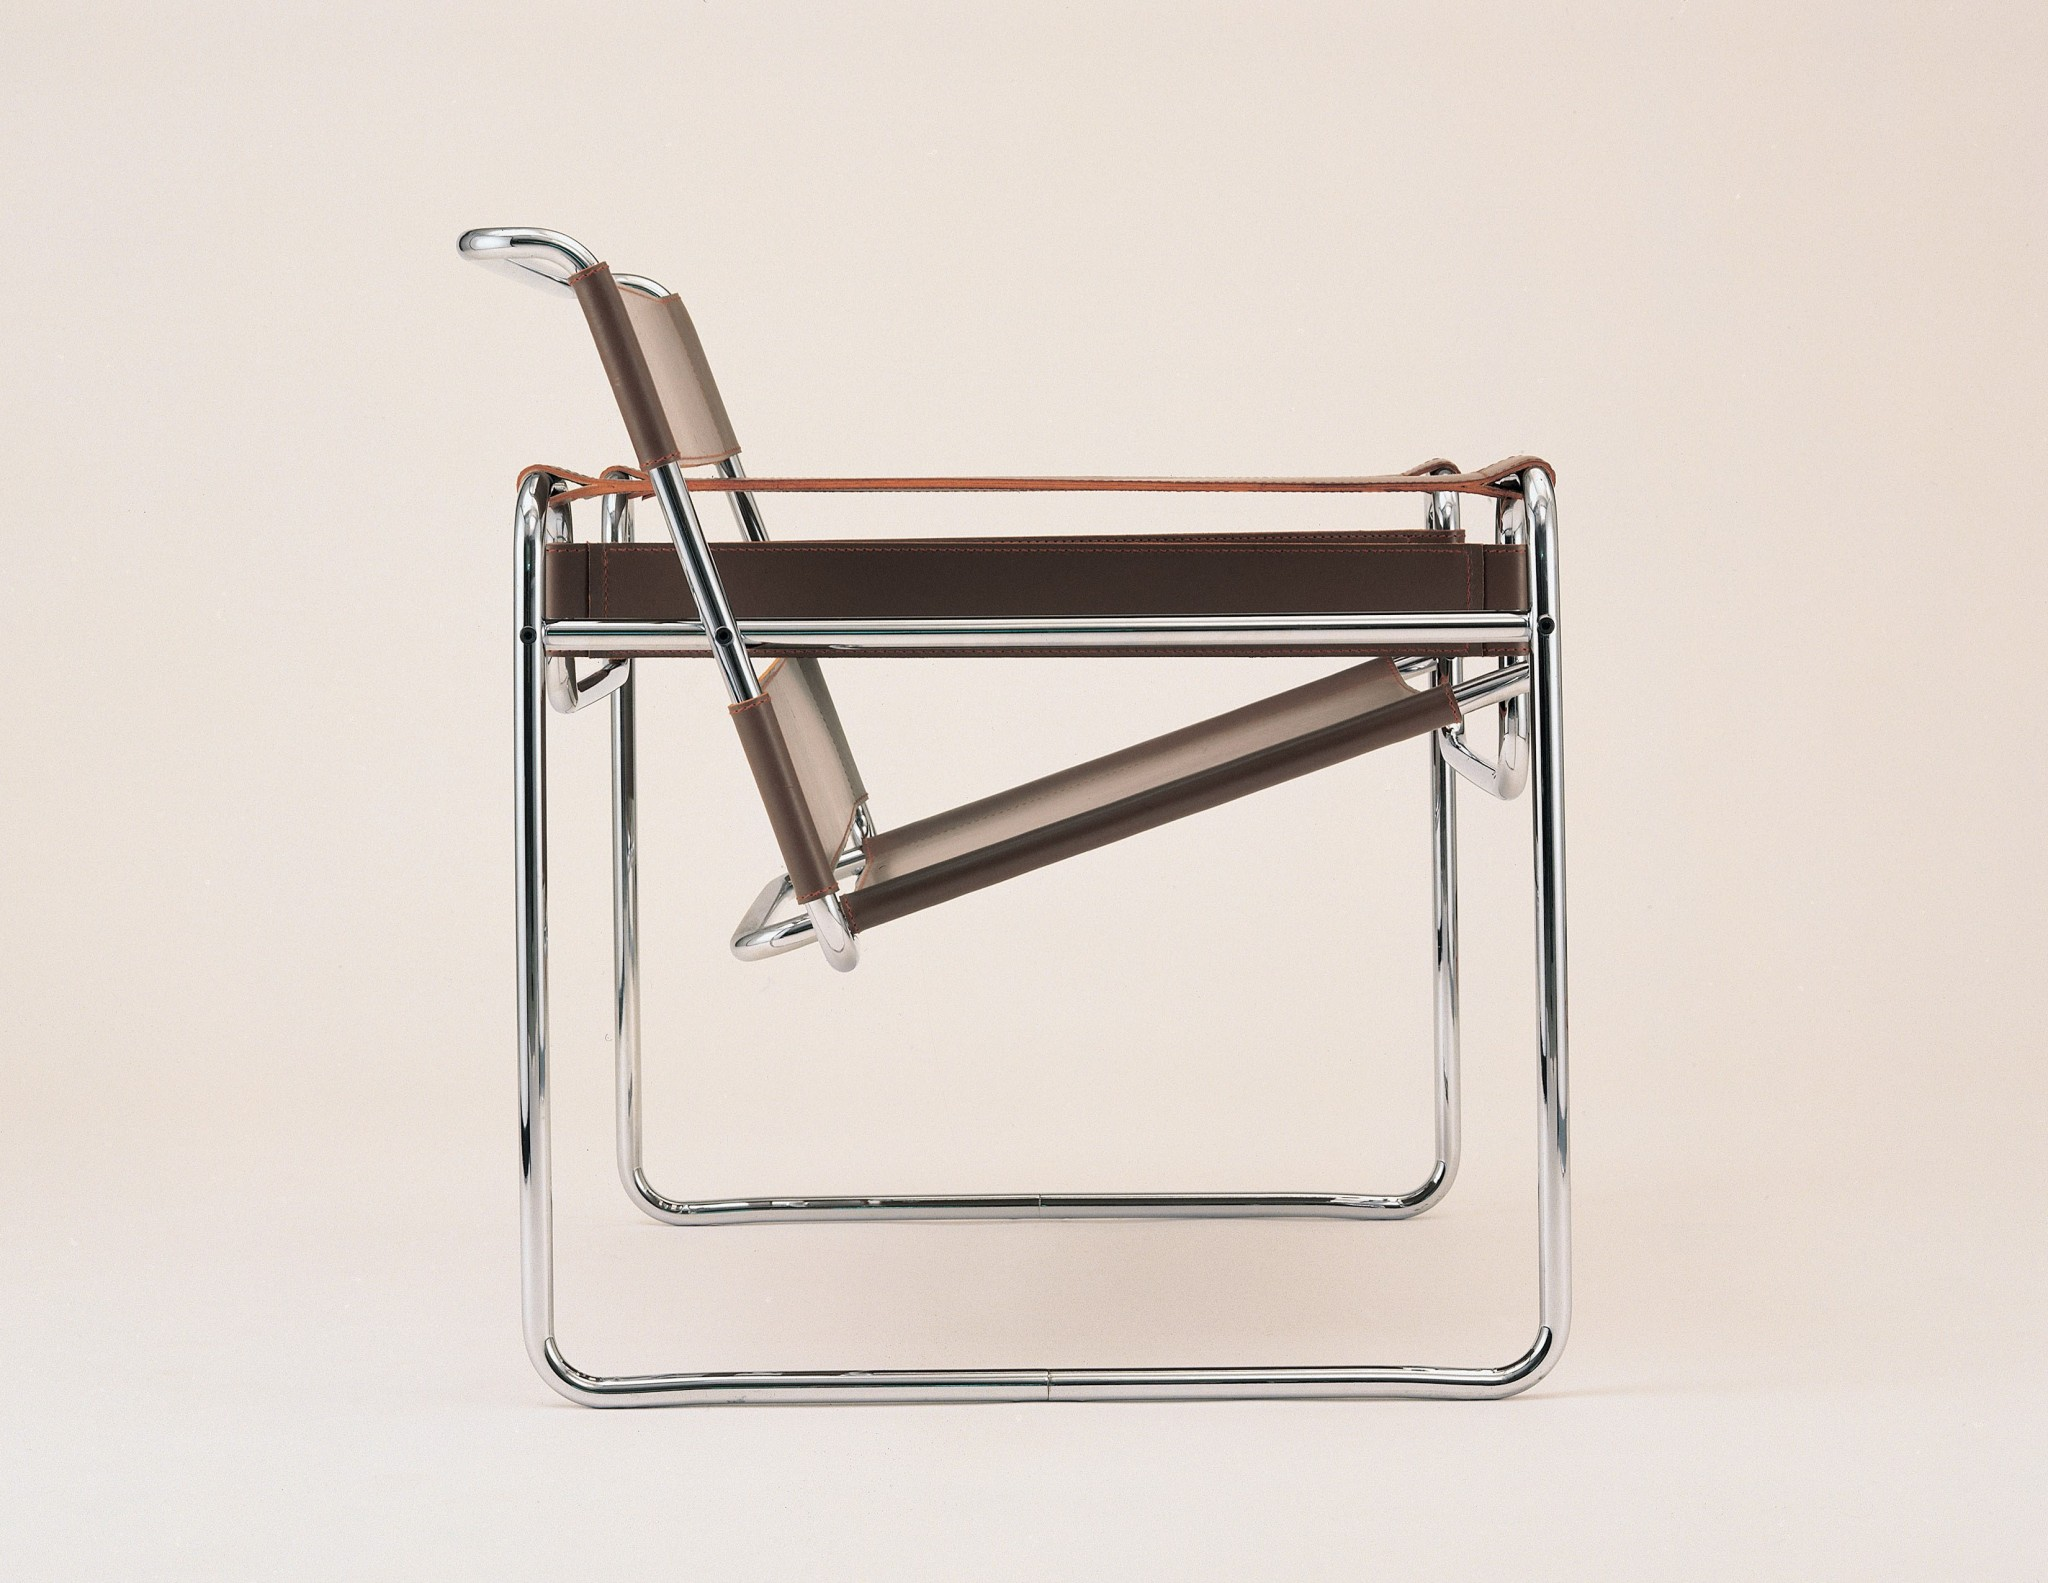 The Wassily Chair, image courtesy of Knoll, Inc.